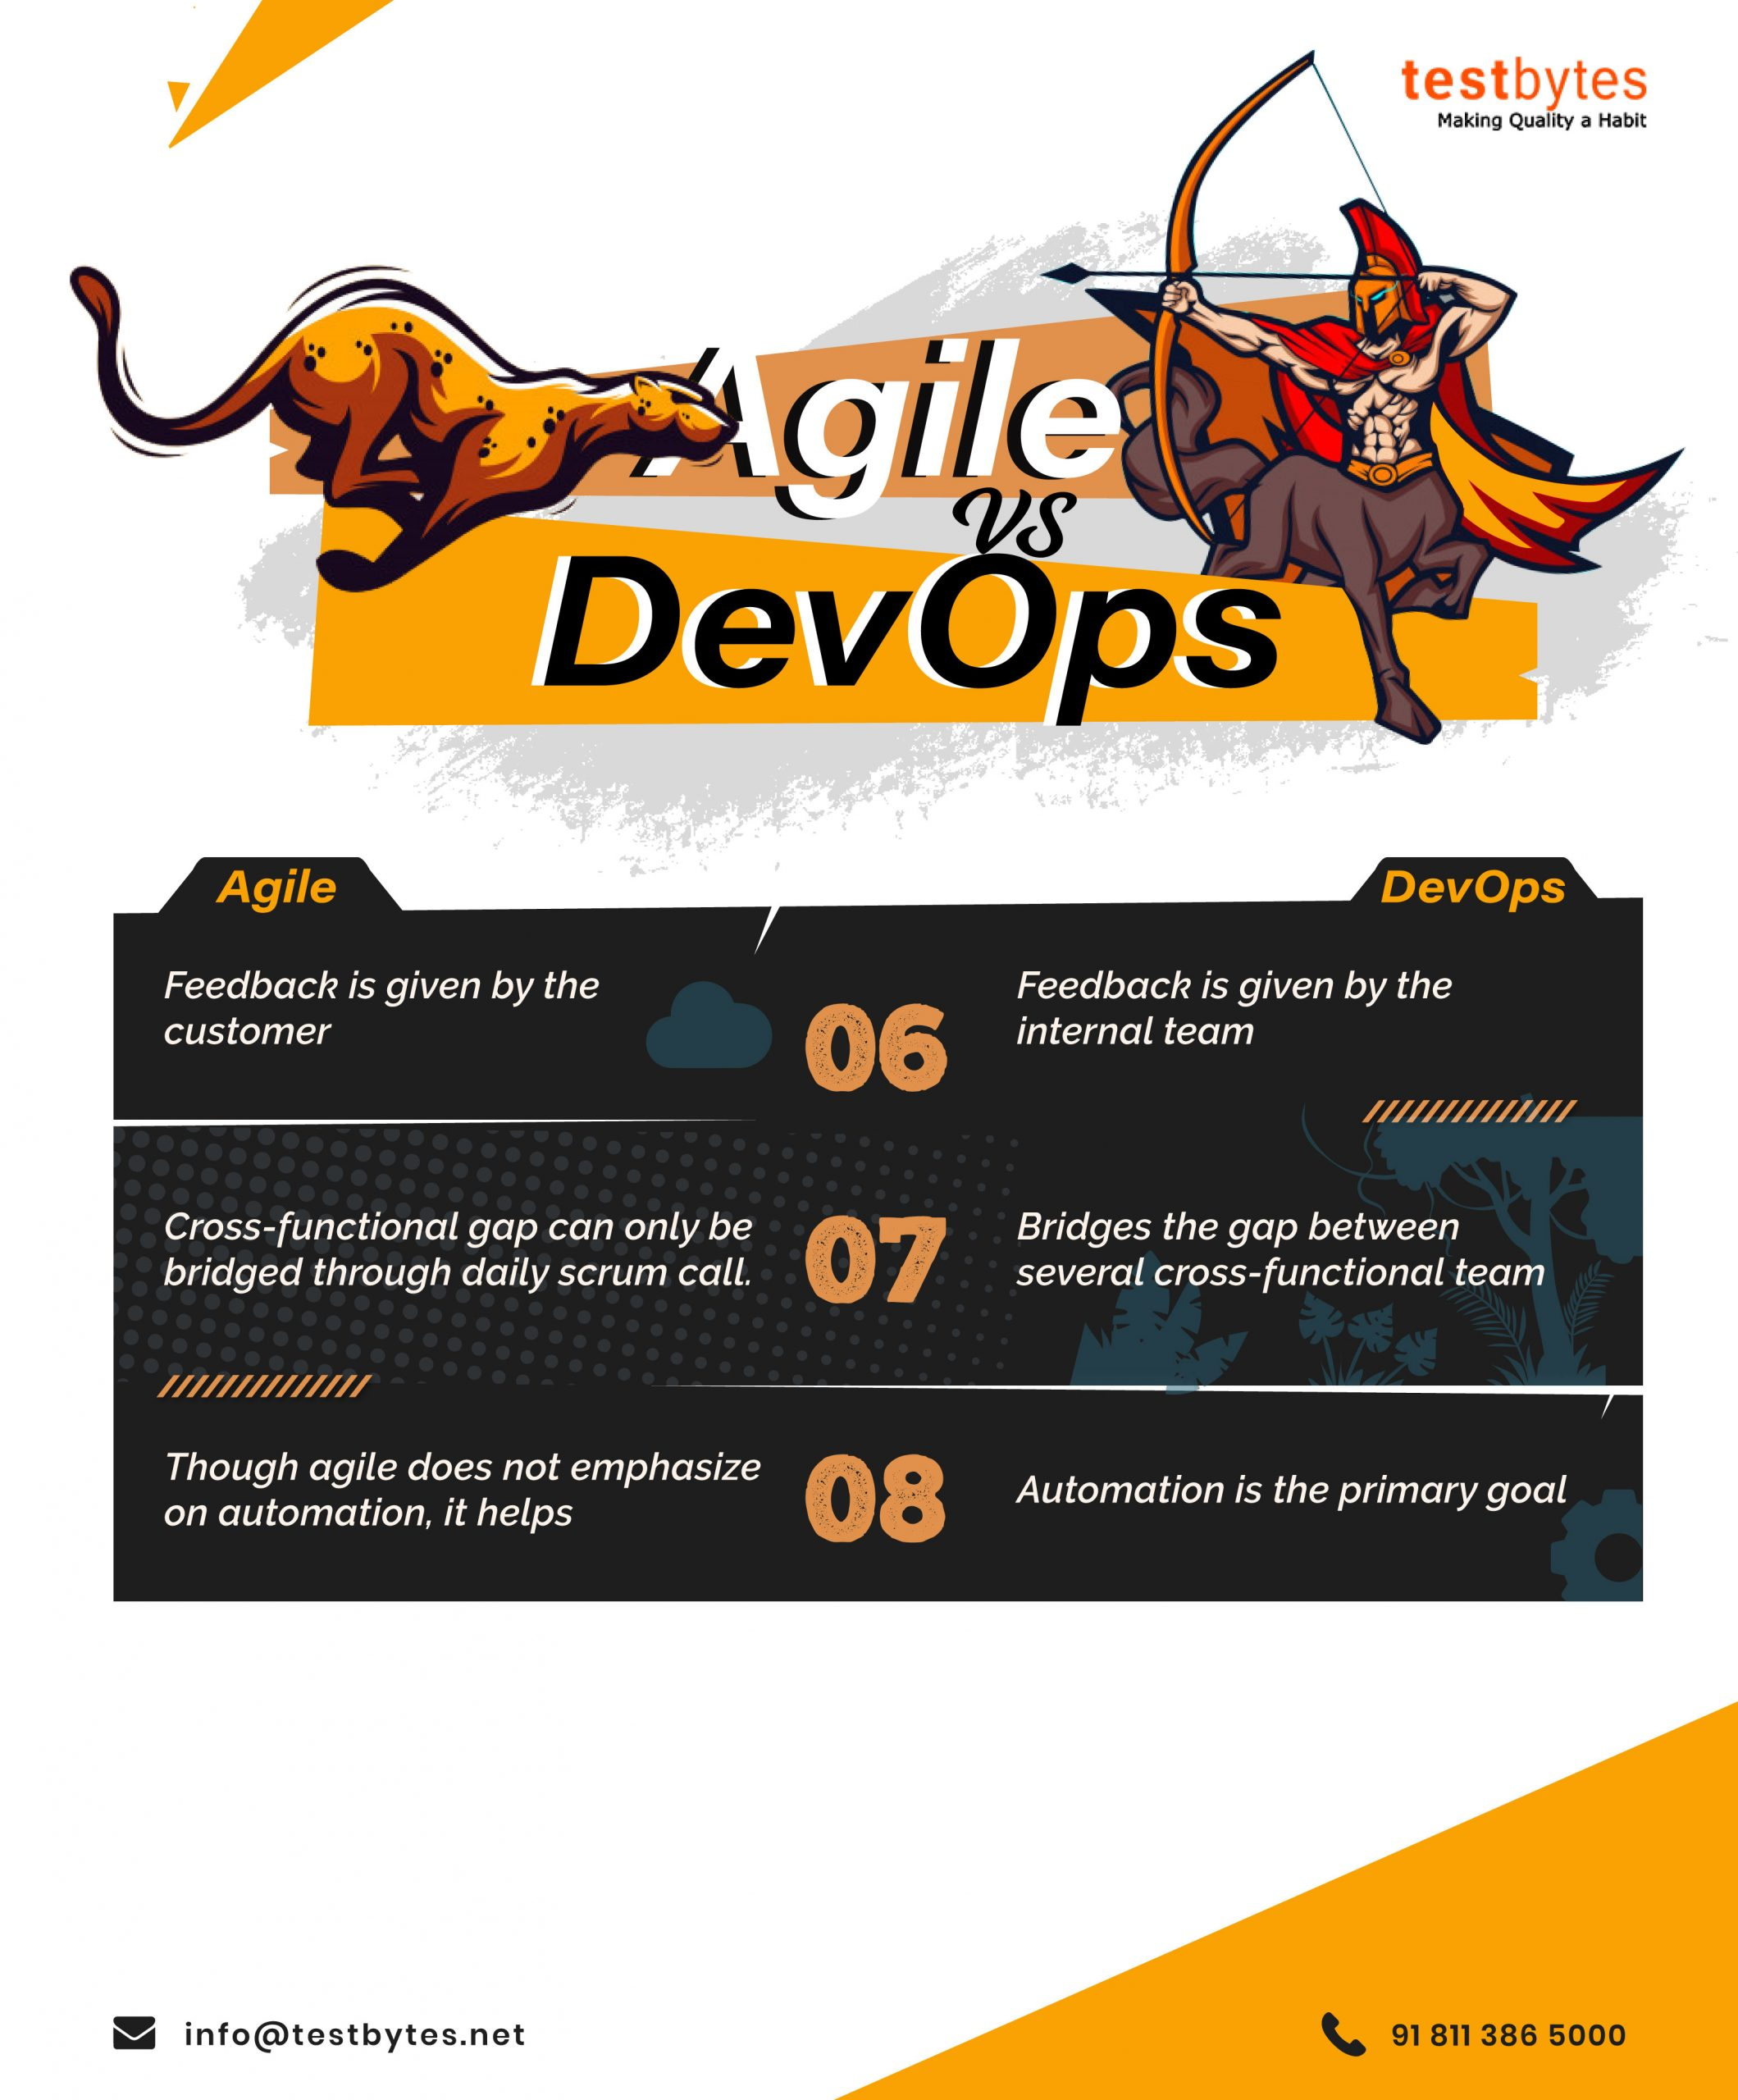 difference between agile and devops